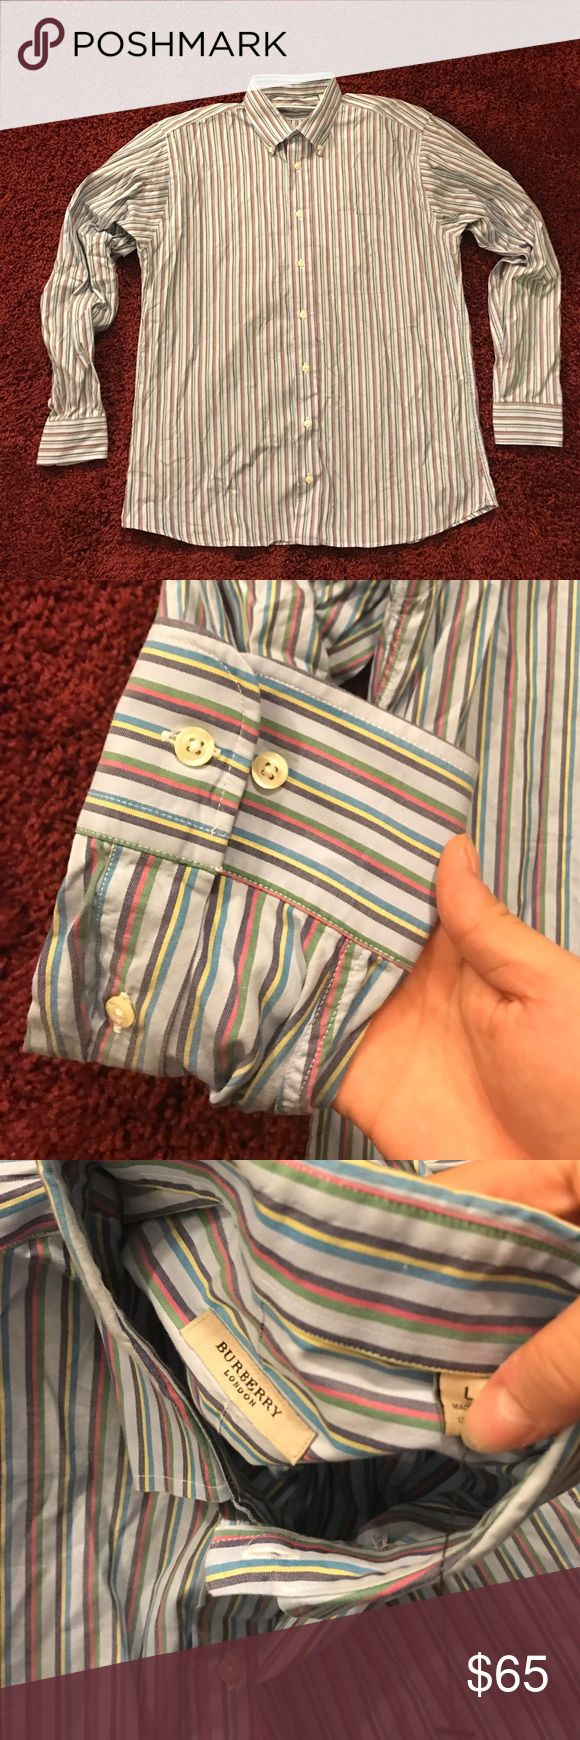 •SALE• NWOT AUTH BURBERRY $350 RETAIL BUTTON DOWN• ••NWOT MENS DESIGNER AUTHENTIC FANCY DRESS SHIRT- SIZE LARGE•• PURCHASED $350 PLUS TAX FROM NORDSTROM FOR MY HUSBAND BUT HE NEVER ENDED UP WEARING IT, ITS WRINKLED FROM STORAGE AND THAT IS REFLECTED IN PRICE. AWESOME COLORS ADD A POP TO A MANS WARDROBE, IT STILL HAS THE TAG PLASTIC HOLDER. •••PRICED TO SELL SAME DAY, LOWEST YOULL EVER FIND FOR AN AUTHENTIC ONE IN FLAWLESS CONDITION, NO TRADES OR HOLDS••• Burberry Shirts Dress Shirts